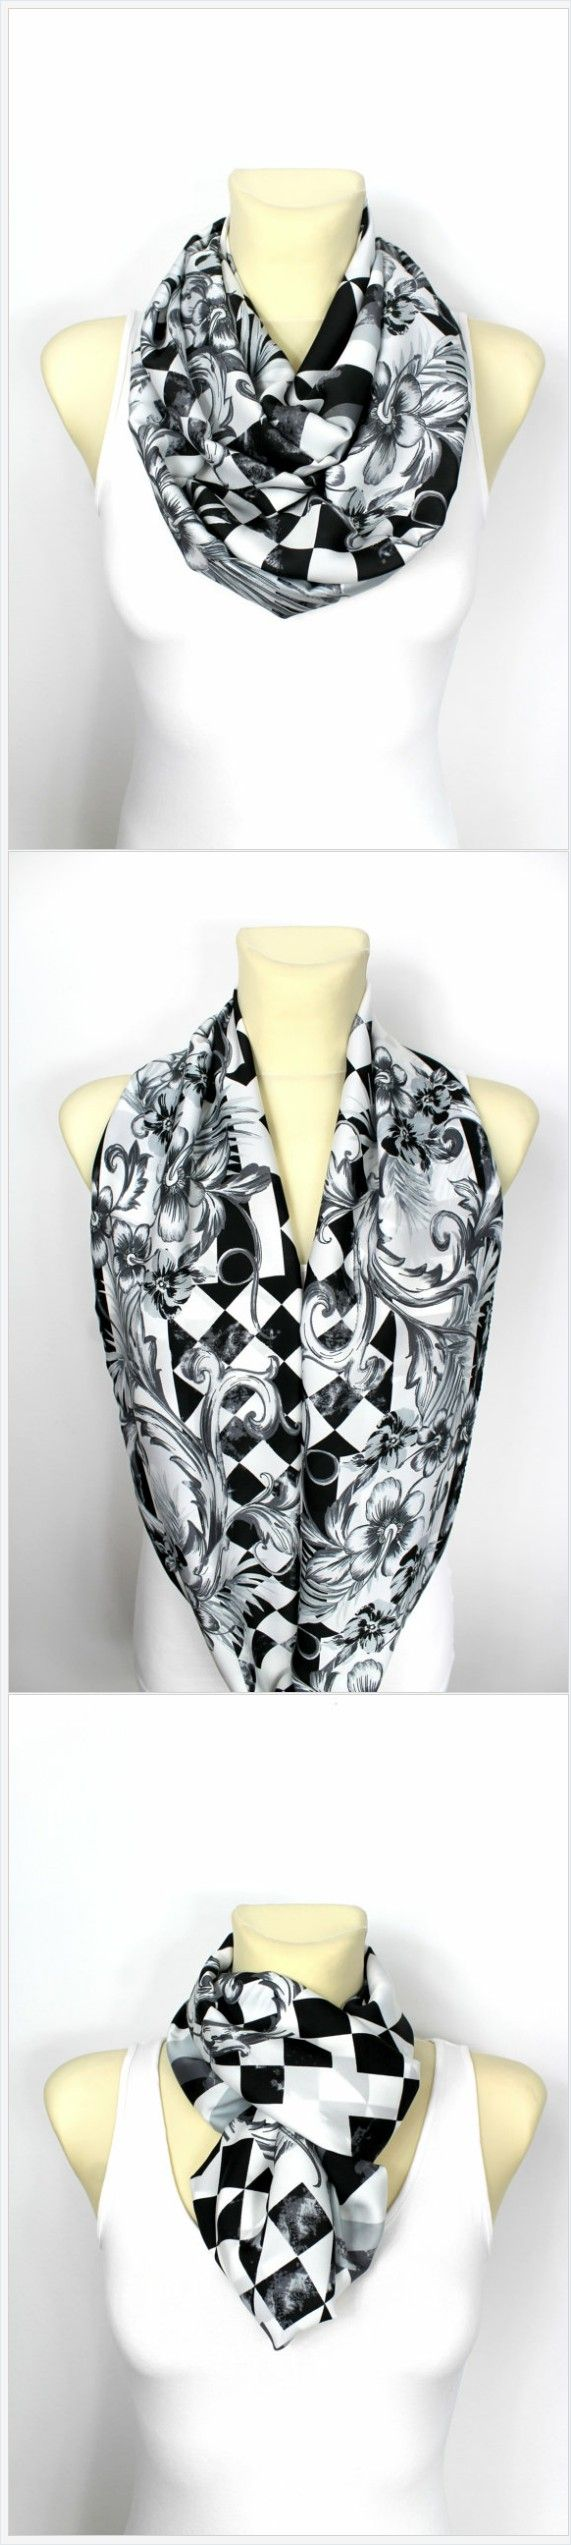 Silky satin scarf - The best idea for a Christmas Gift! Chose a fashion print perfect for your taste. Surprise your friend or family member giving this unique gift for Christmas to them. Visit Locotrends on Etsy to see more high quality handmade scarves as well as gorgeous mega chunky knit blankets